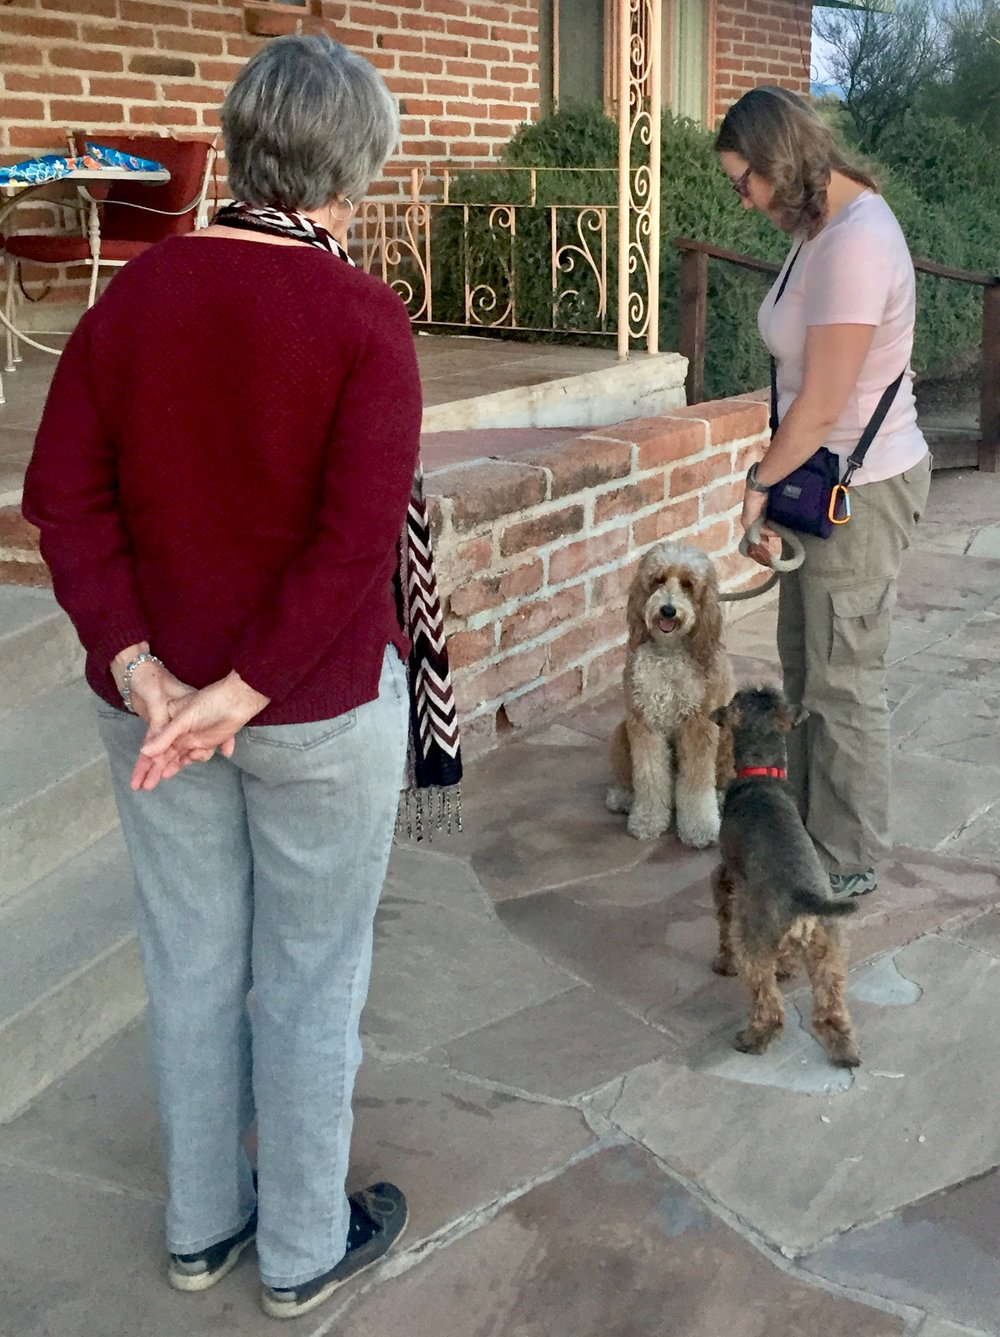 Bernie McSquare finds the other dog's proximity to him a bit distracting while my friend and I try practicing our meeting for the Canine Good Citizen test.